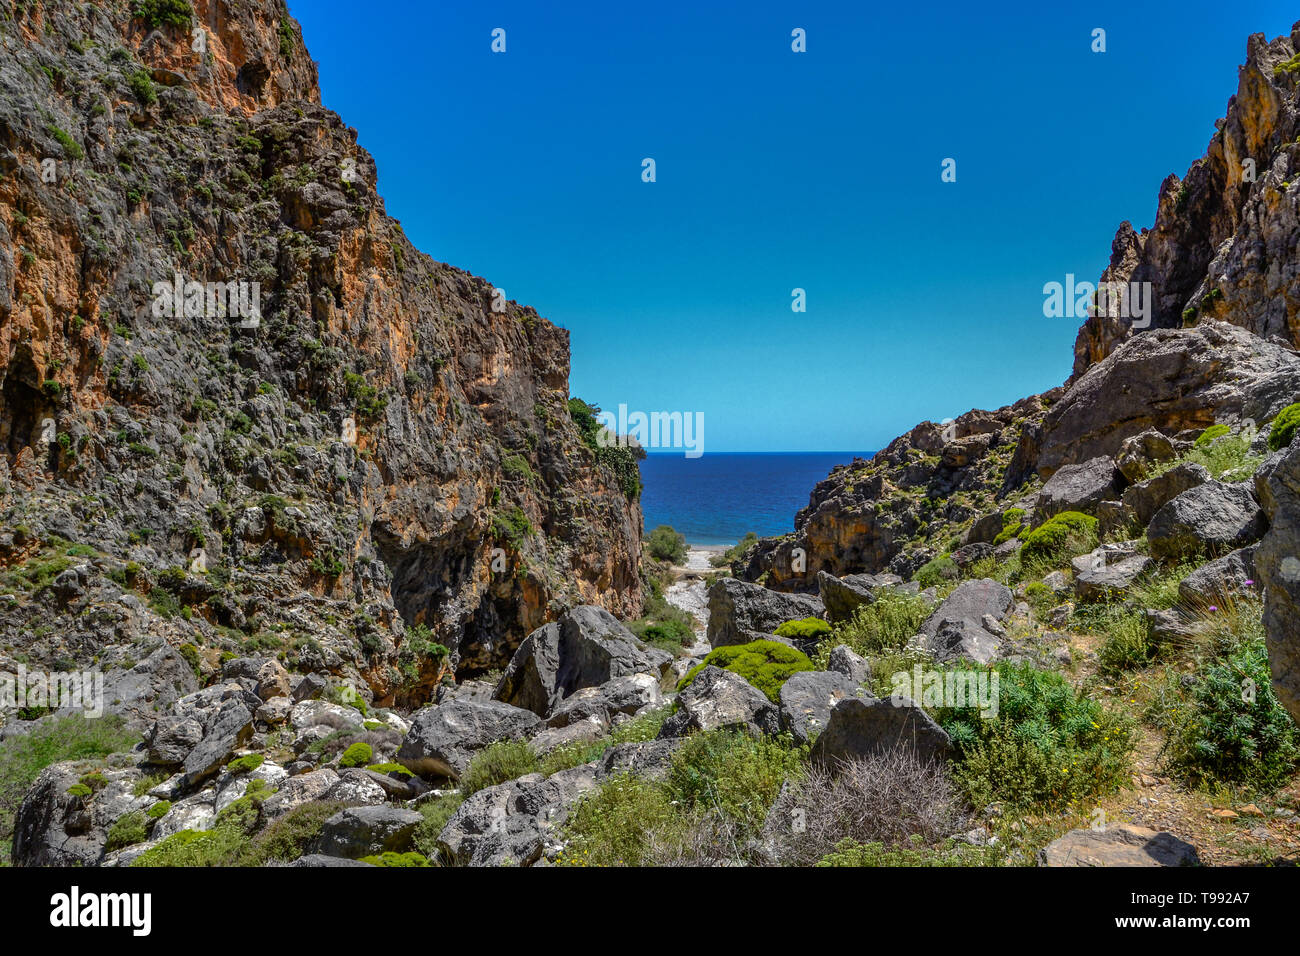 Crete nature and landscapes - Stock Image